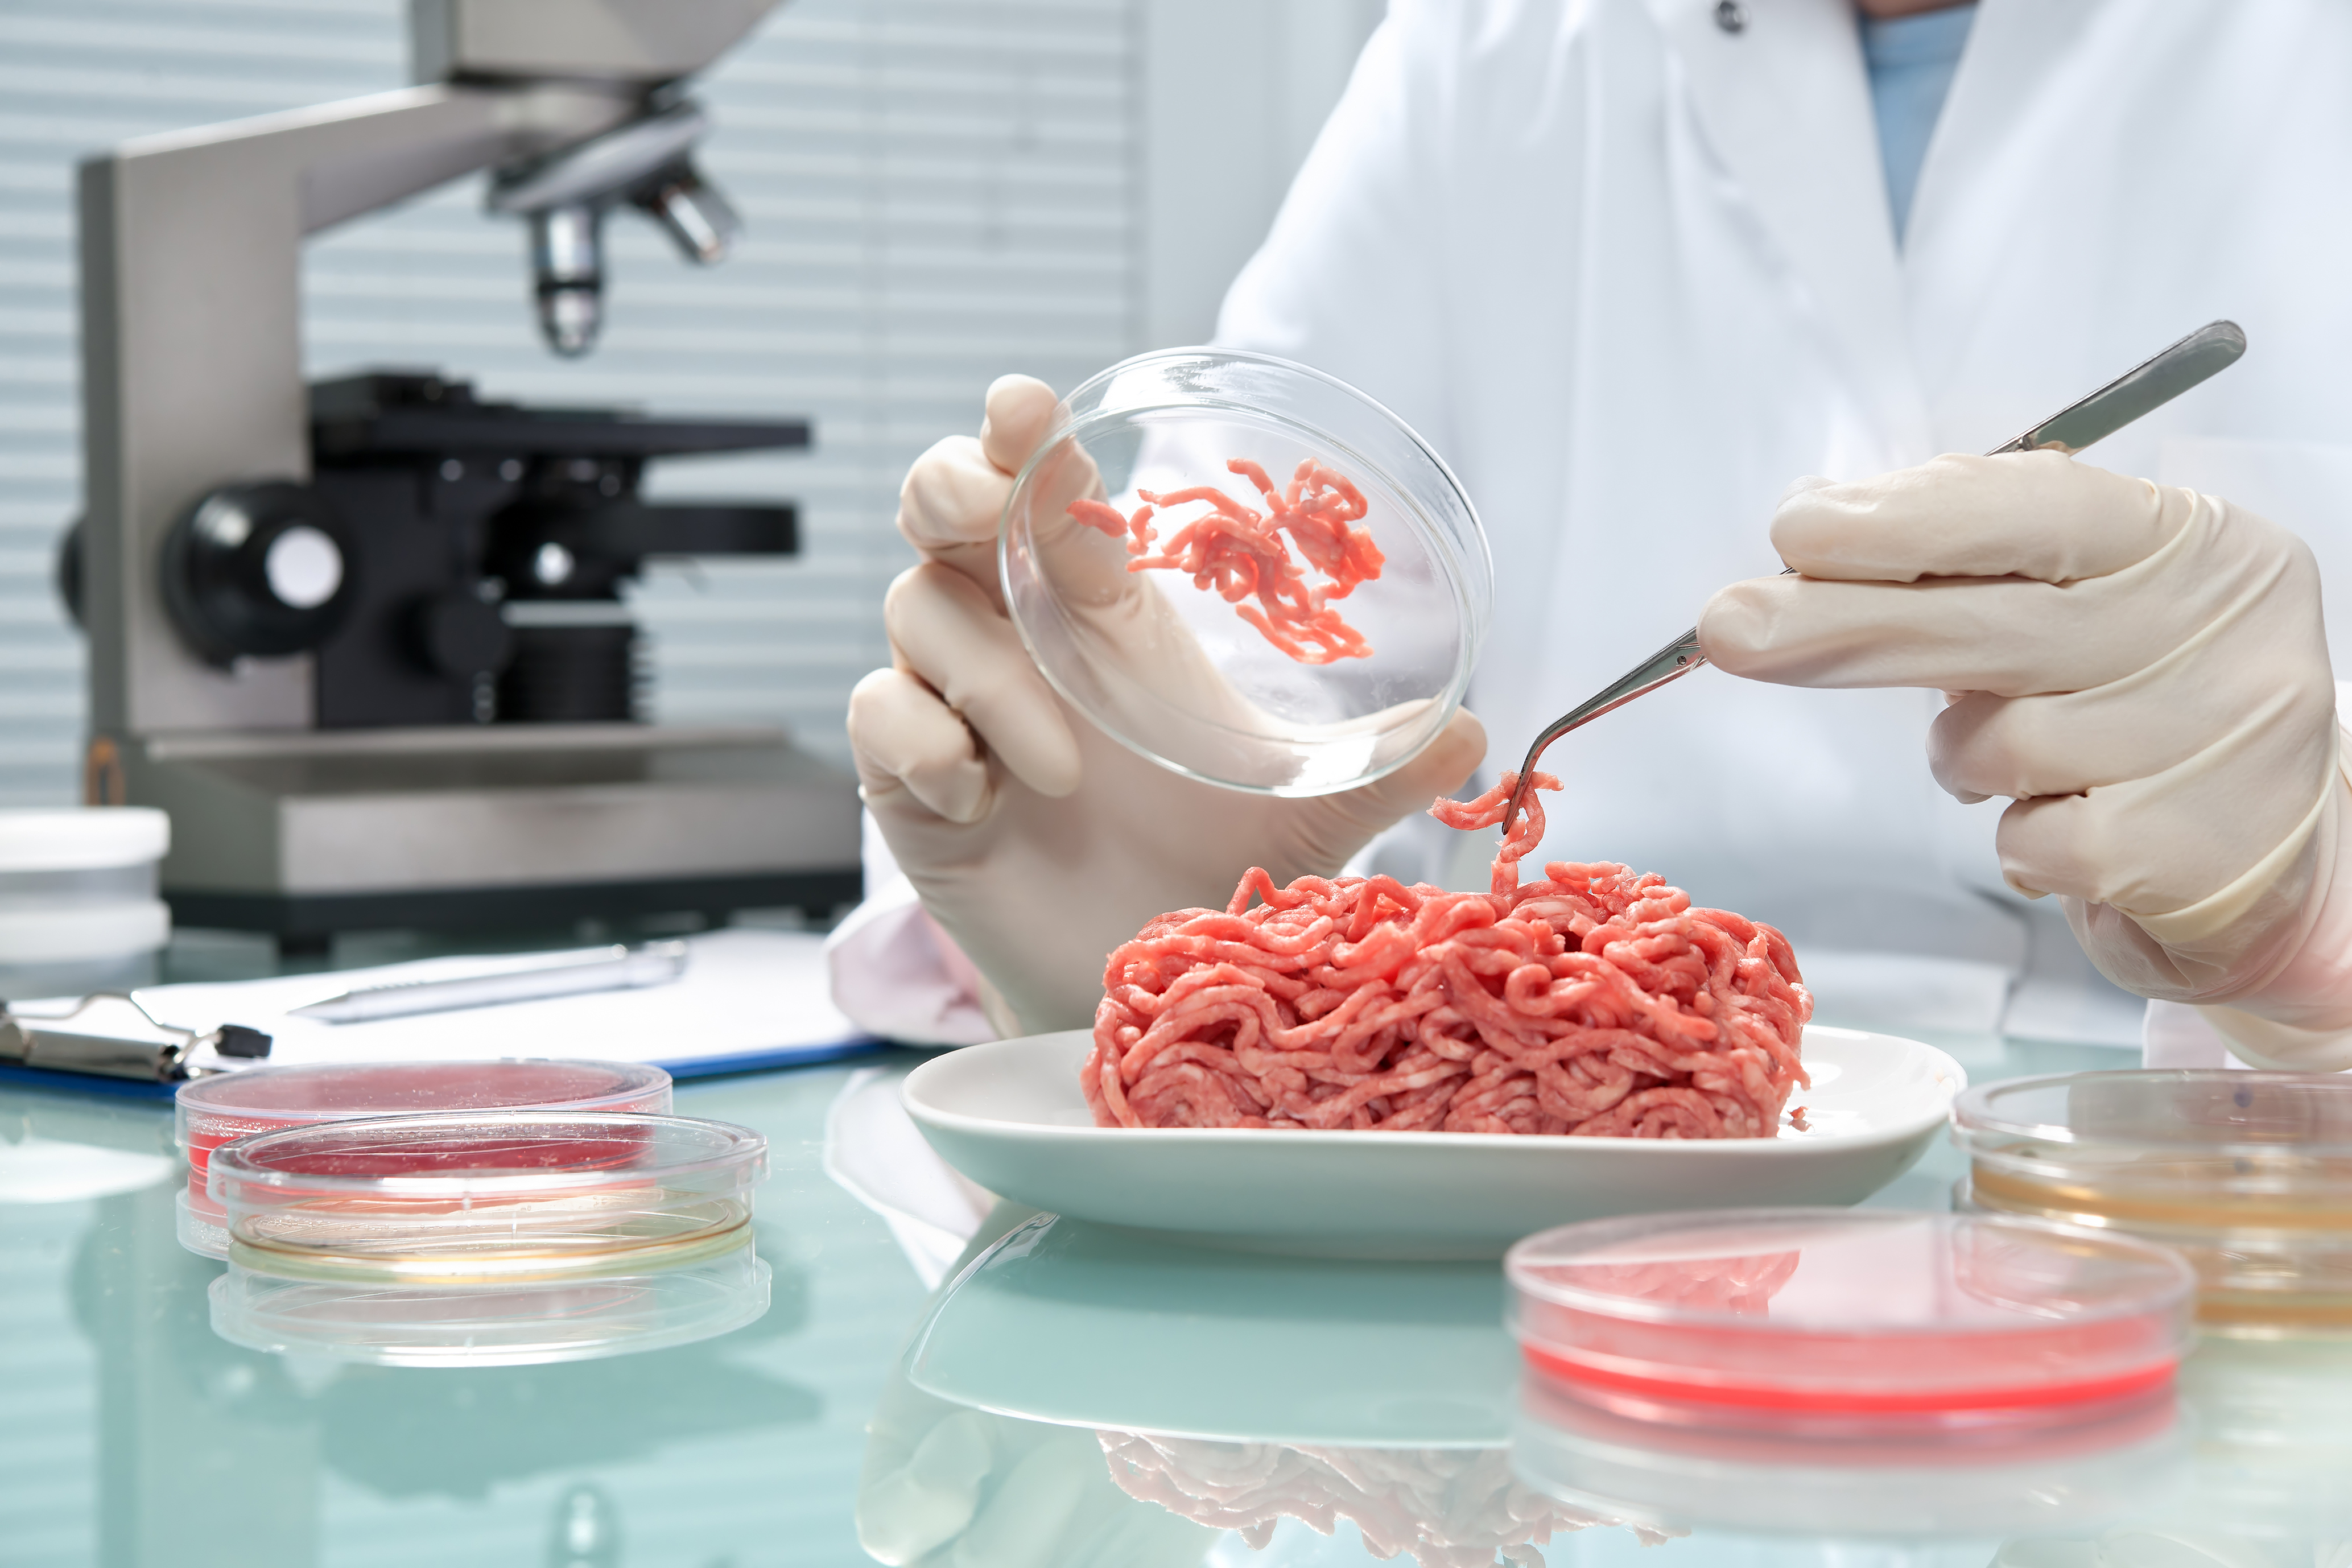 how to detect pathogens in food